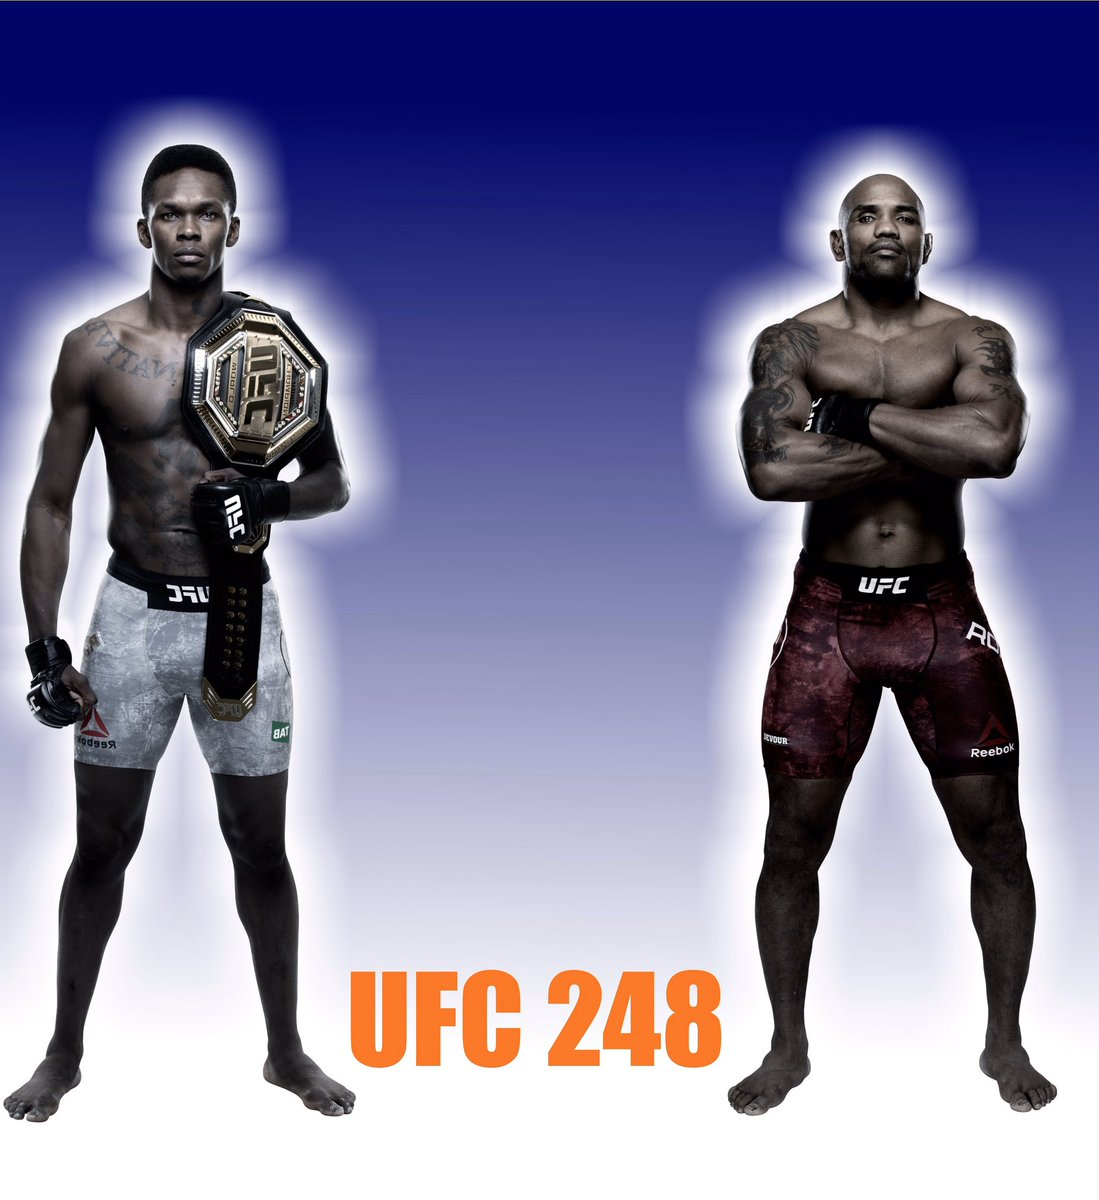 L A Biergarten On Twitter Big Ufc Fight Card For This Saturday Night Ufc 248 Adesanya Vs Romero And Zhang Vs Joanna We Are Confirmed As An Official Viewing Location In Downtown Los